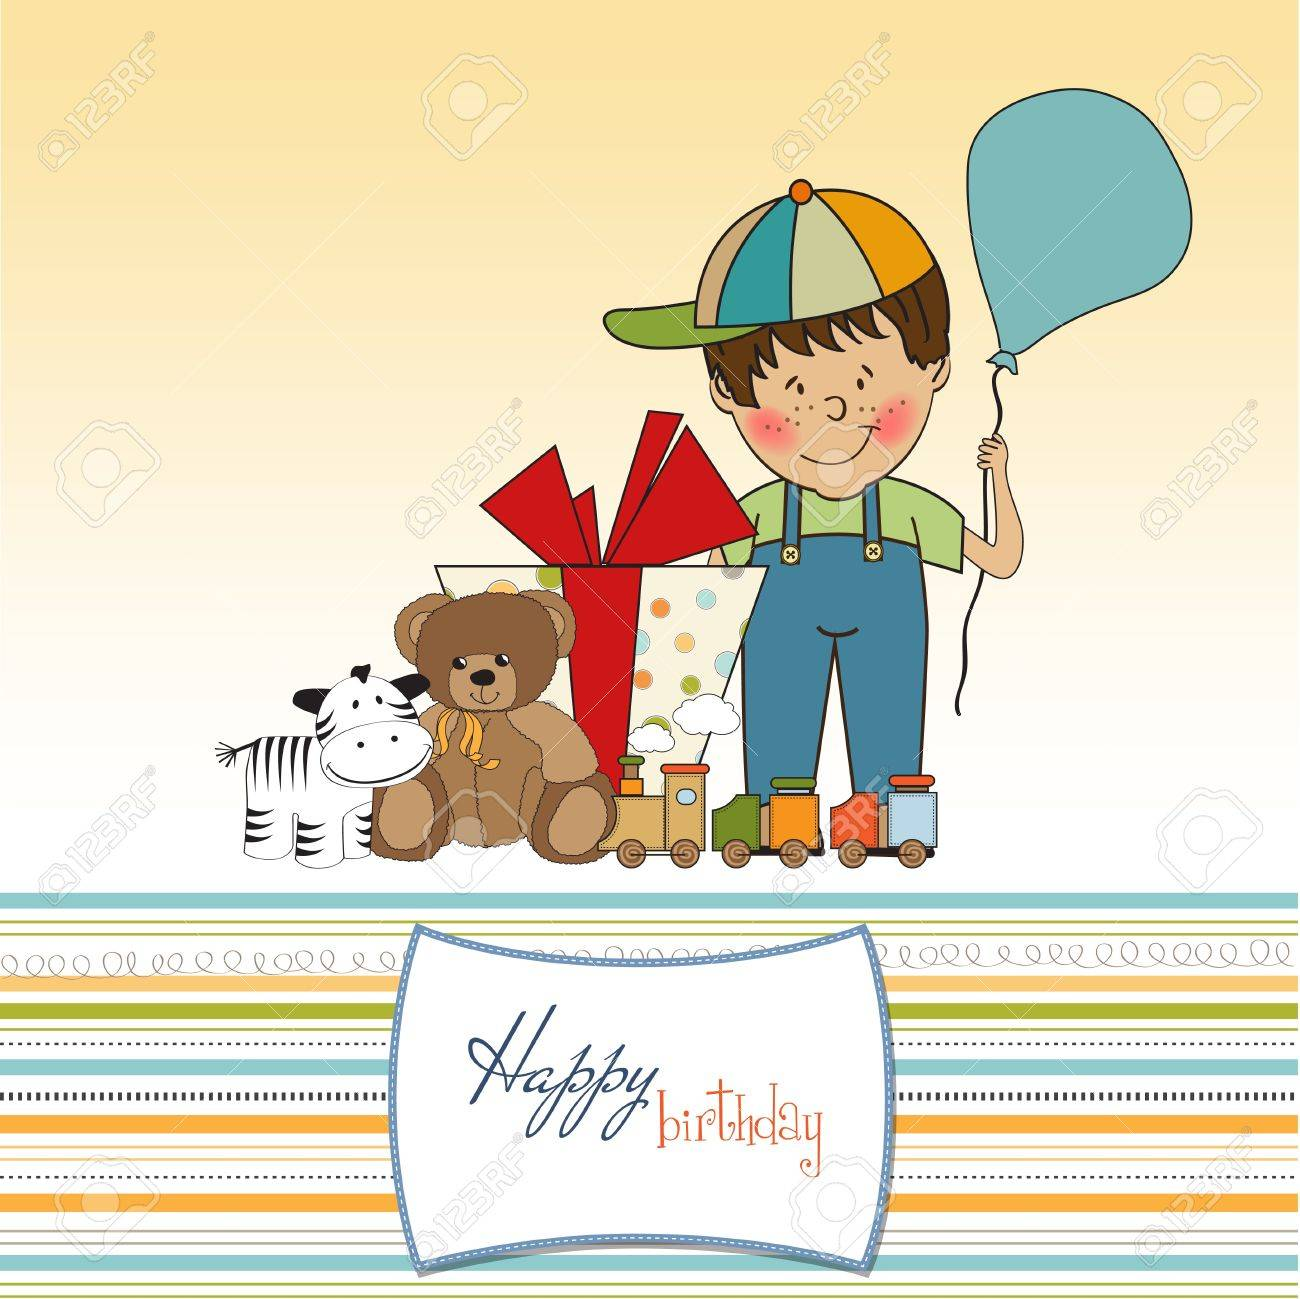 Birthday Greeting Card With Little Boy And Presents Royalty Free – Birthday Cards for Little Boys